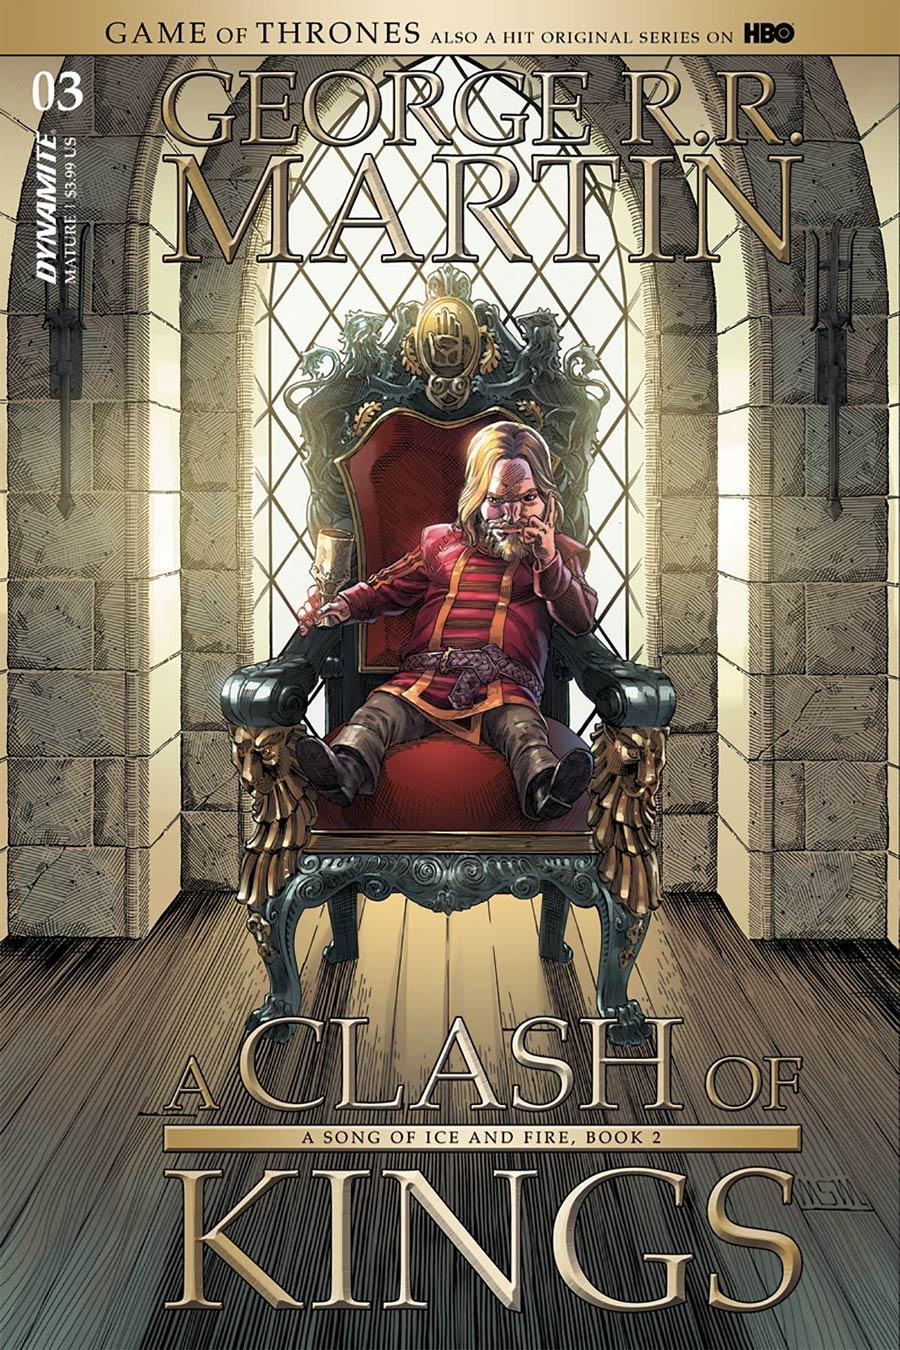 Game Of Thrones Clash Of Kings Vol. 1 #3